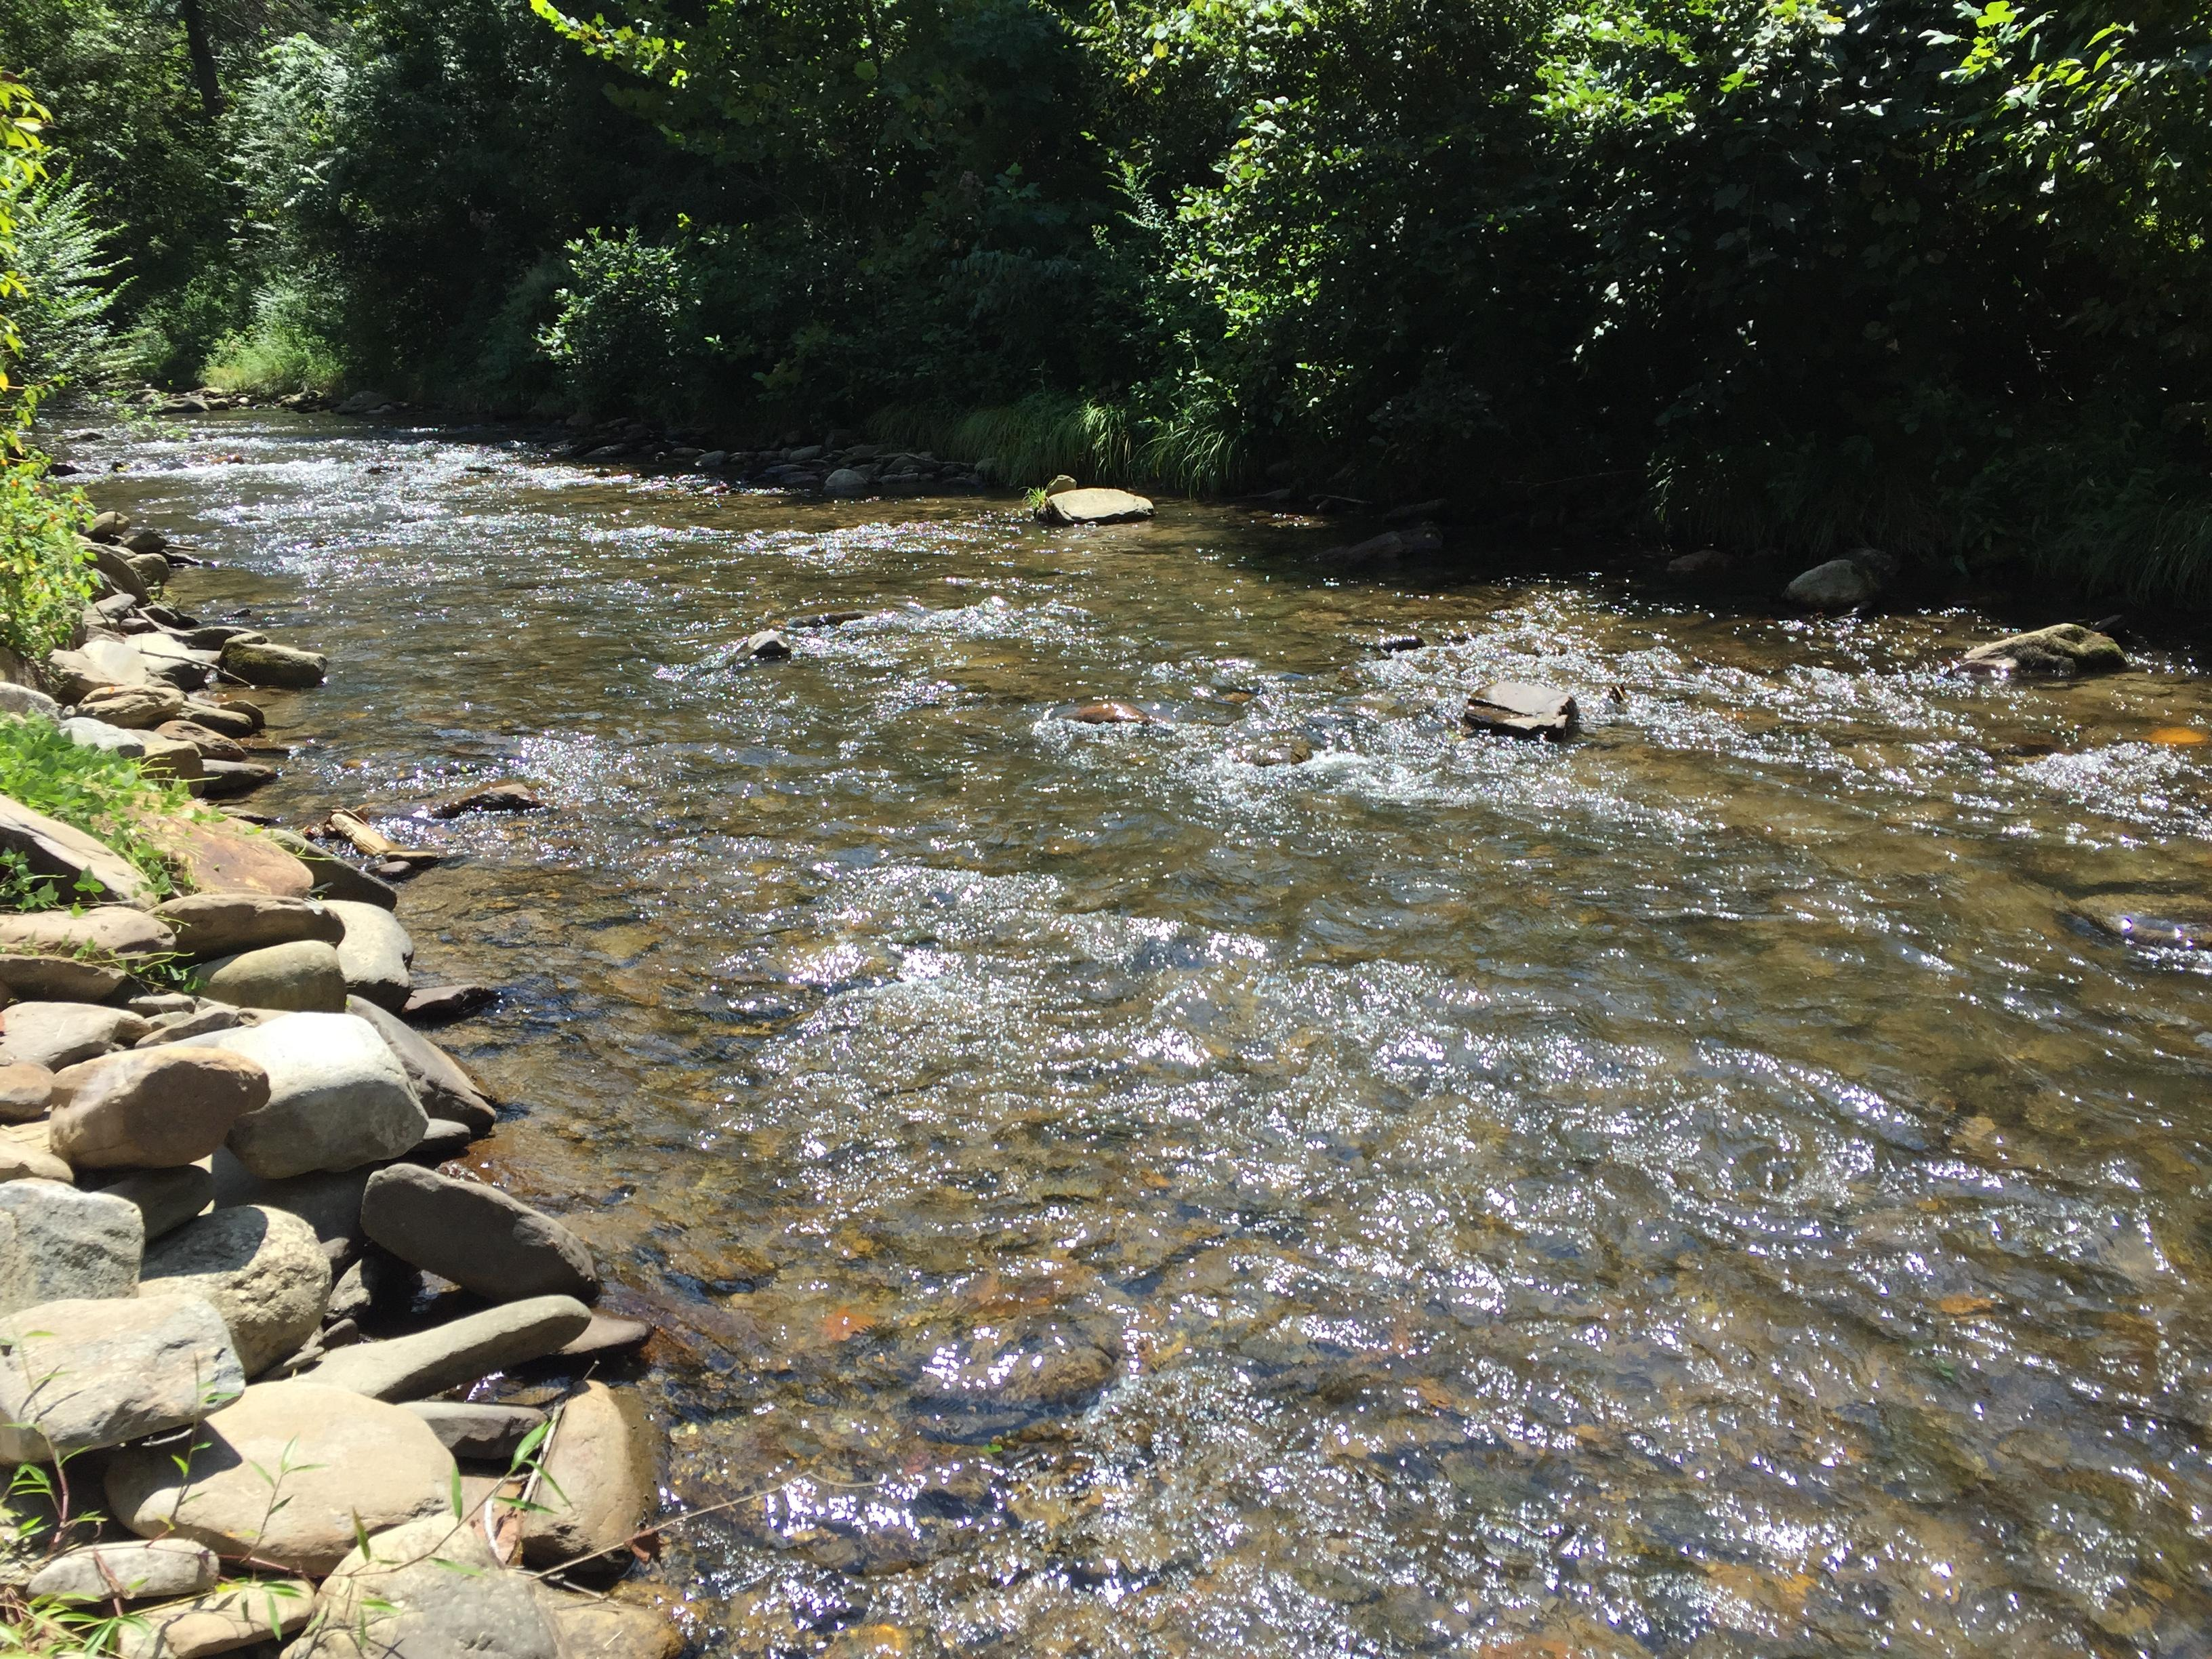 Looking to the opposite side of the Creek, surrounded by Nature! (Photo taken from the Fire Pit)